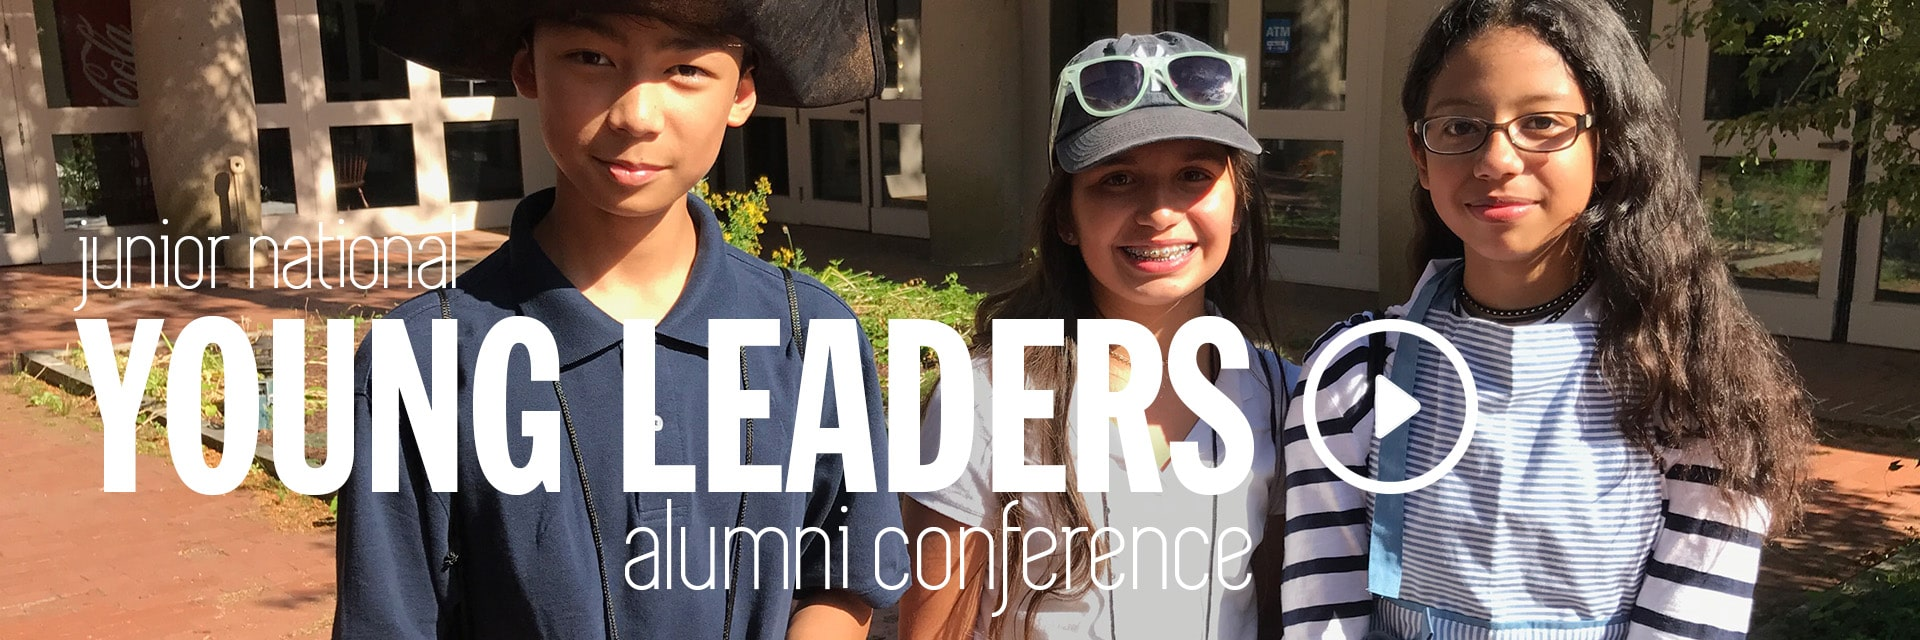 JrNYLC Alumni Conference for Middle School Students Video